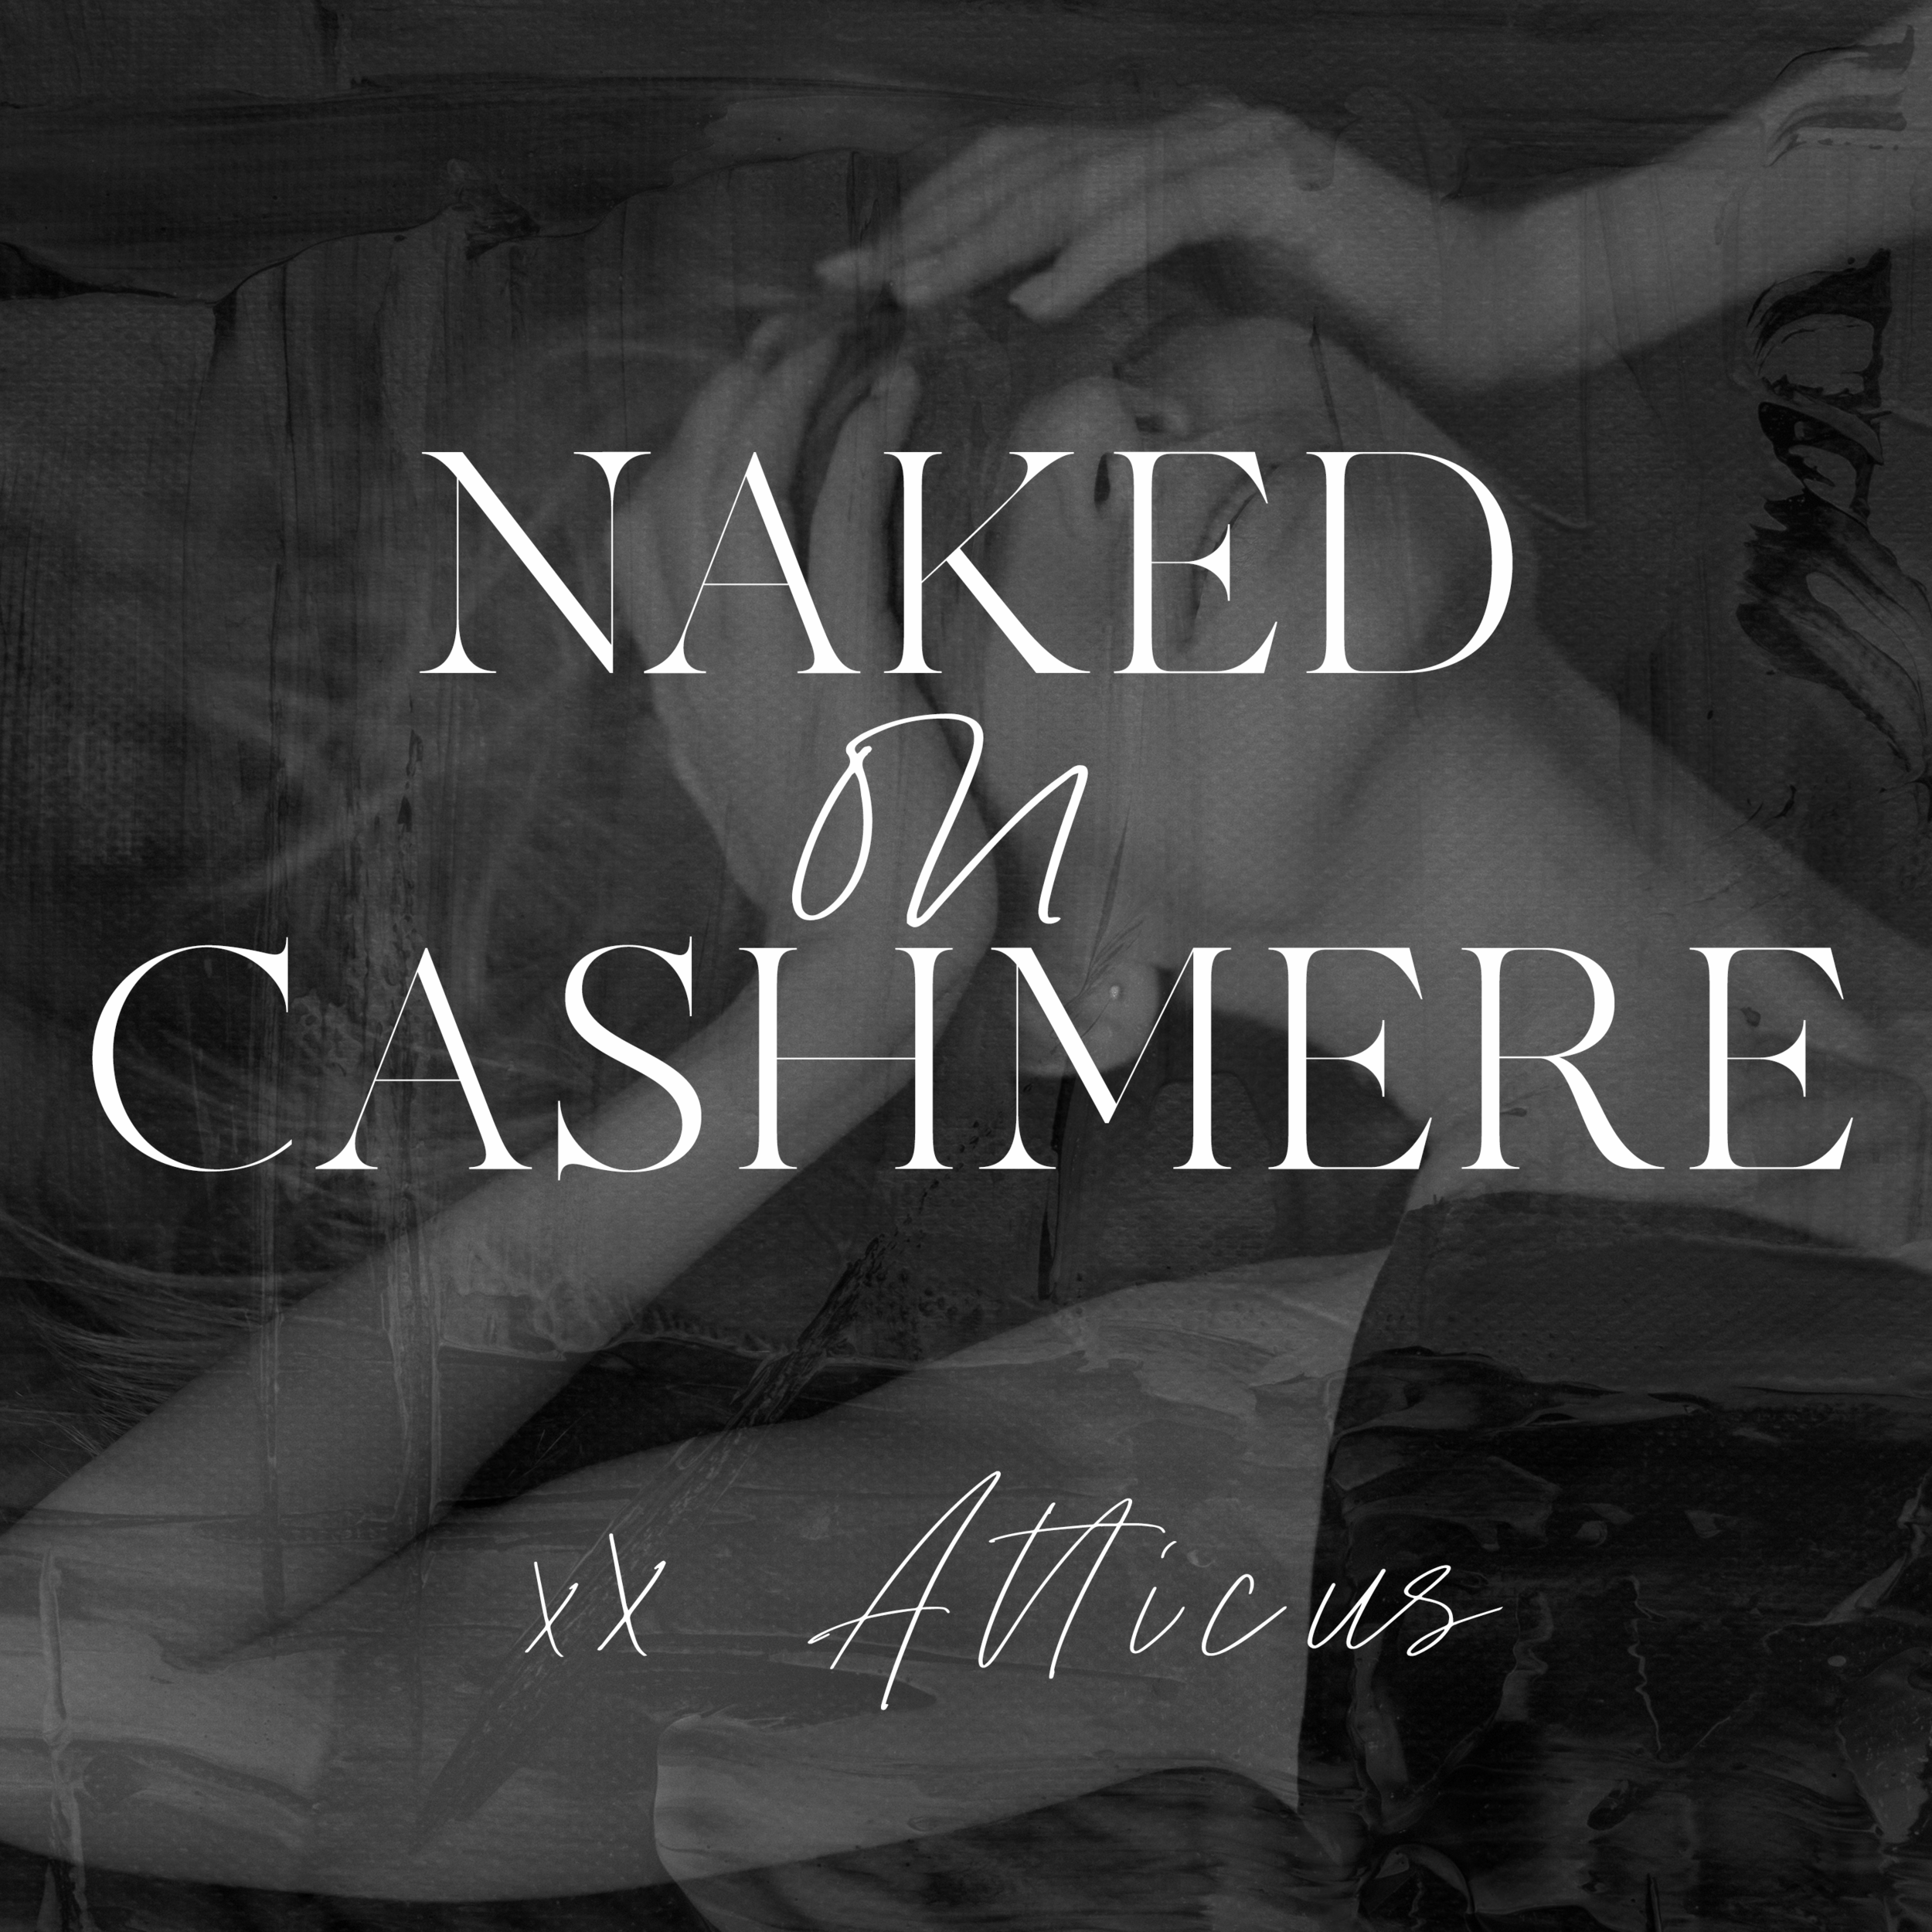 Atticus-Naked_on_Cashmere-podcast.png